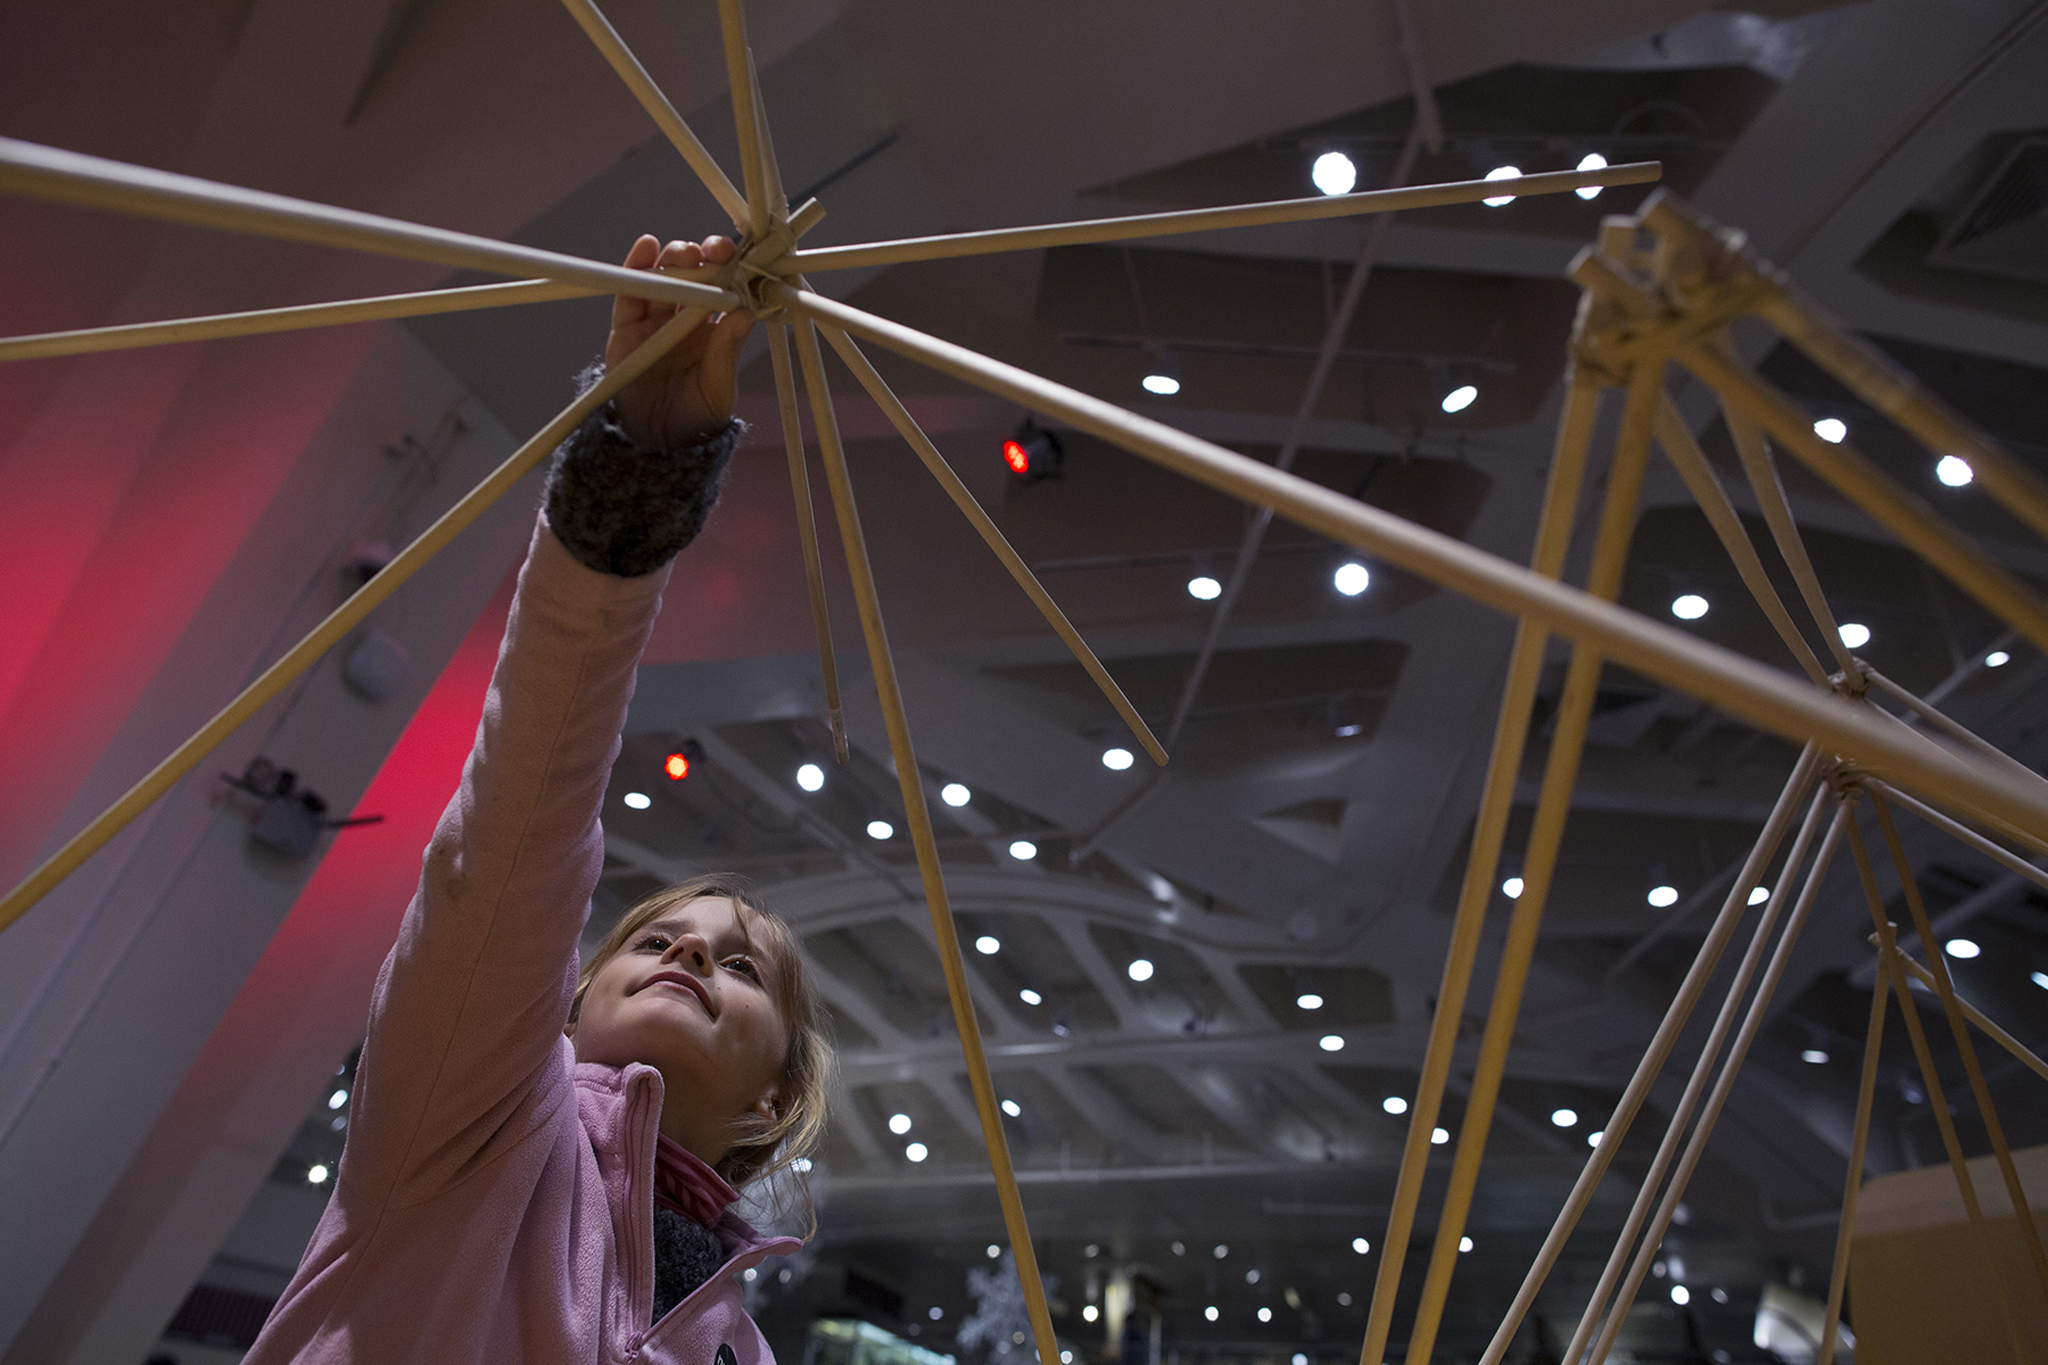 The best exhibits for kids right now